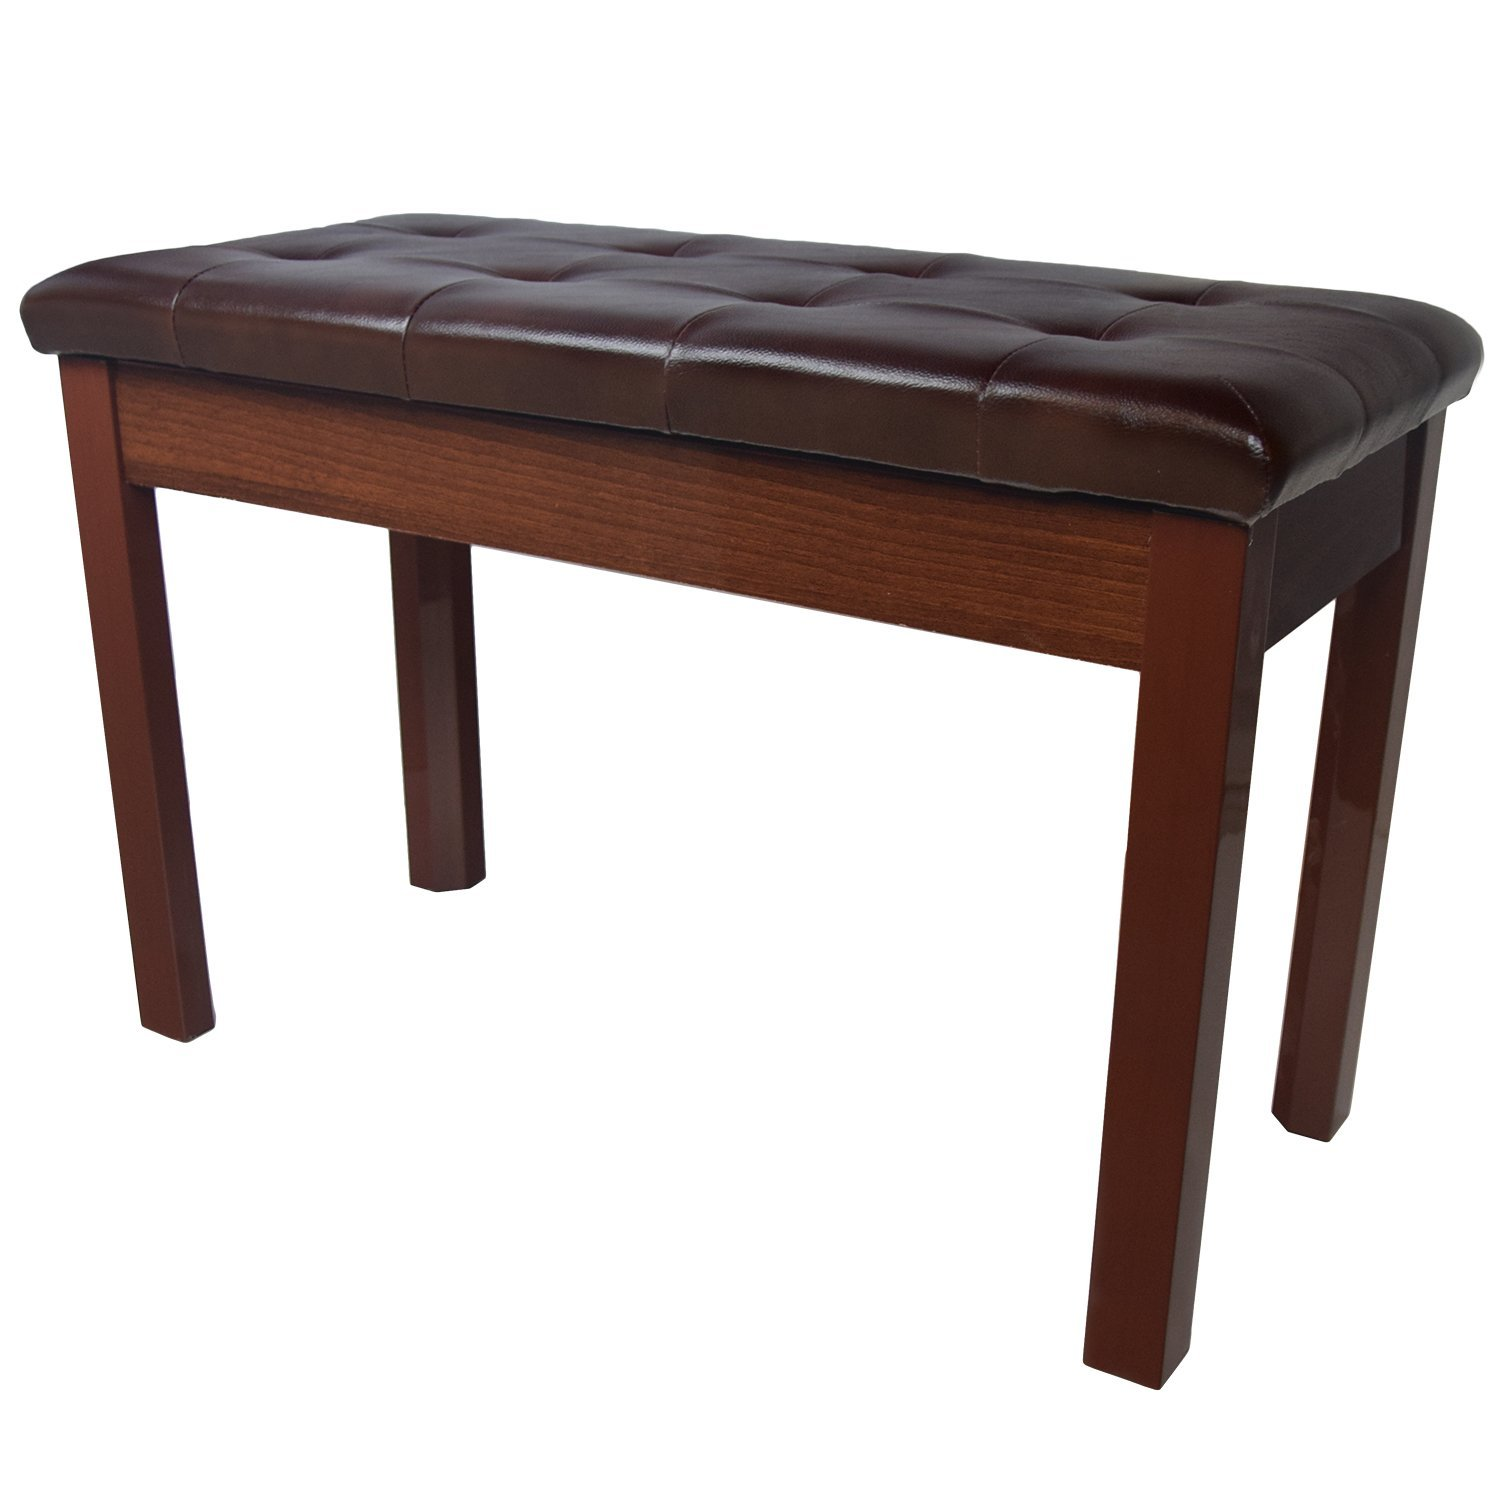 Chromacast Padded Wooden Double Size Piano Bench, Walnut CC-WBENCH-WAL-D